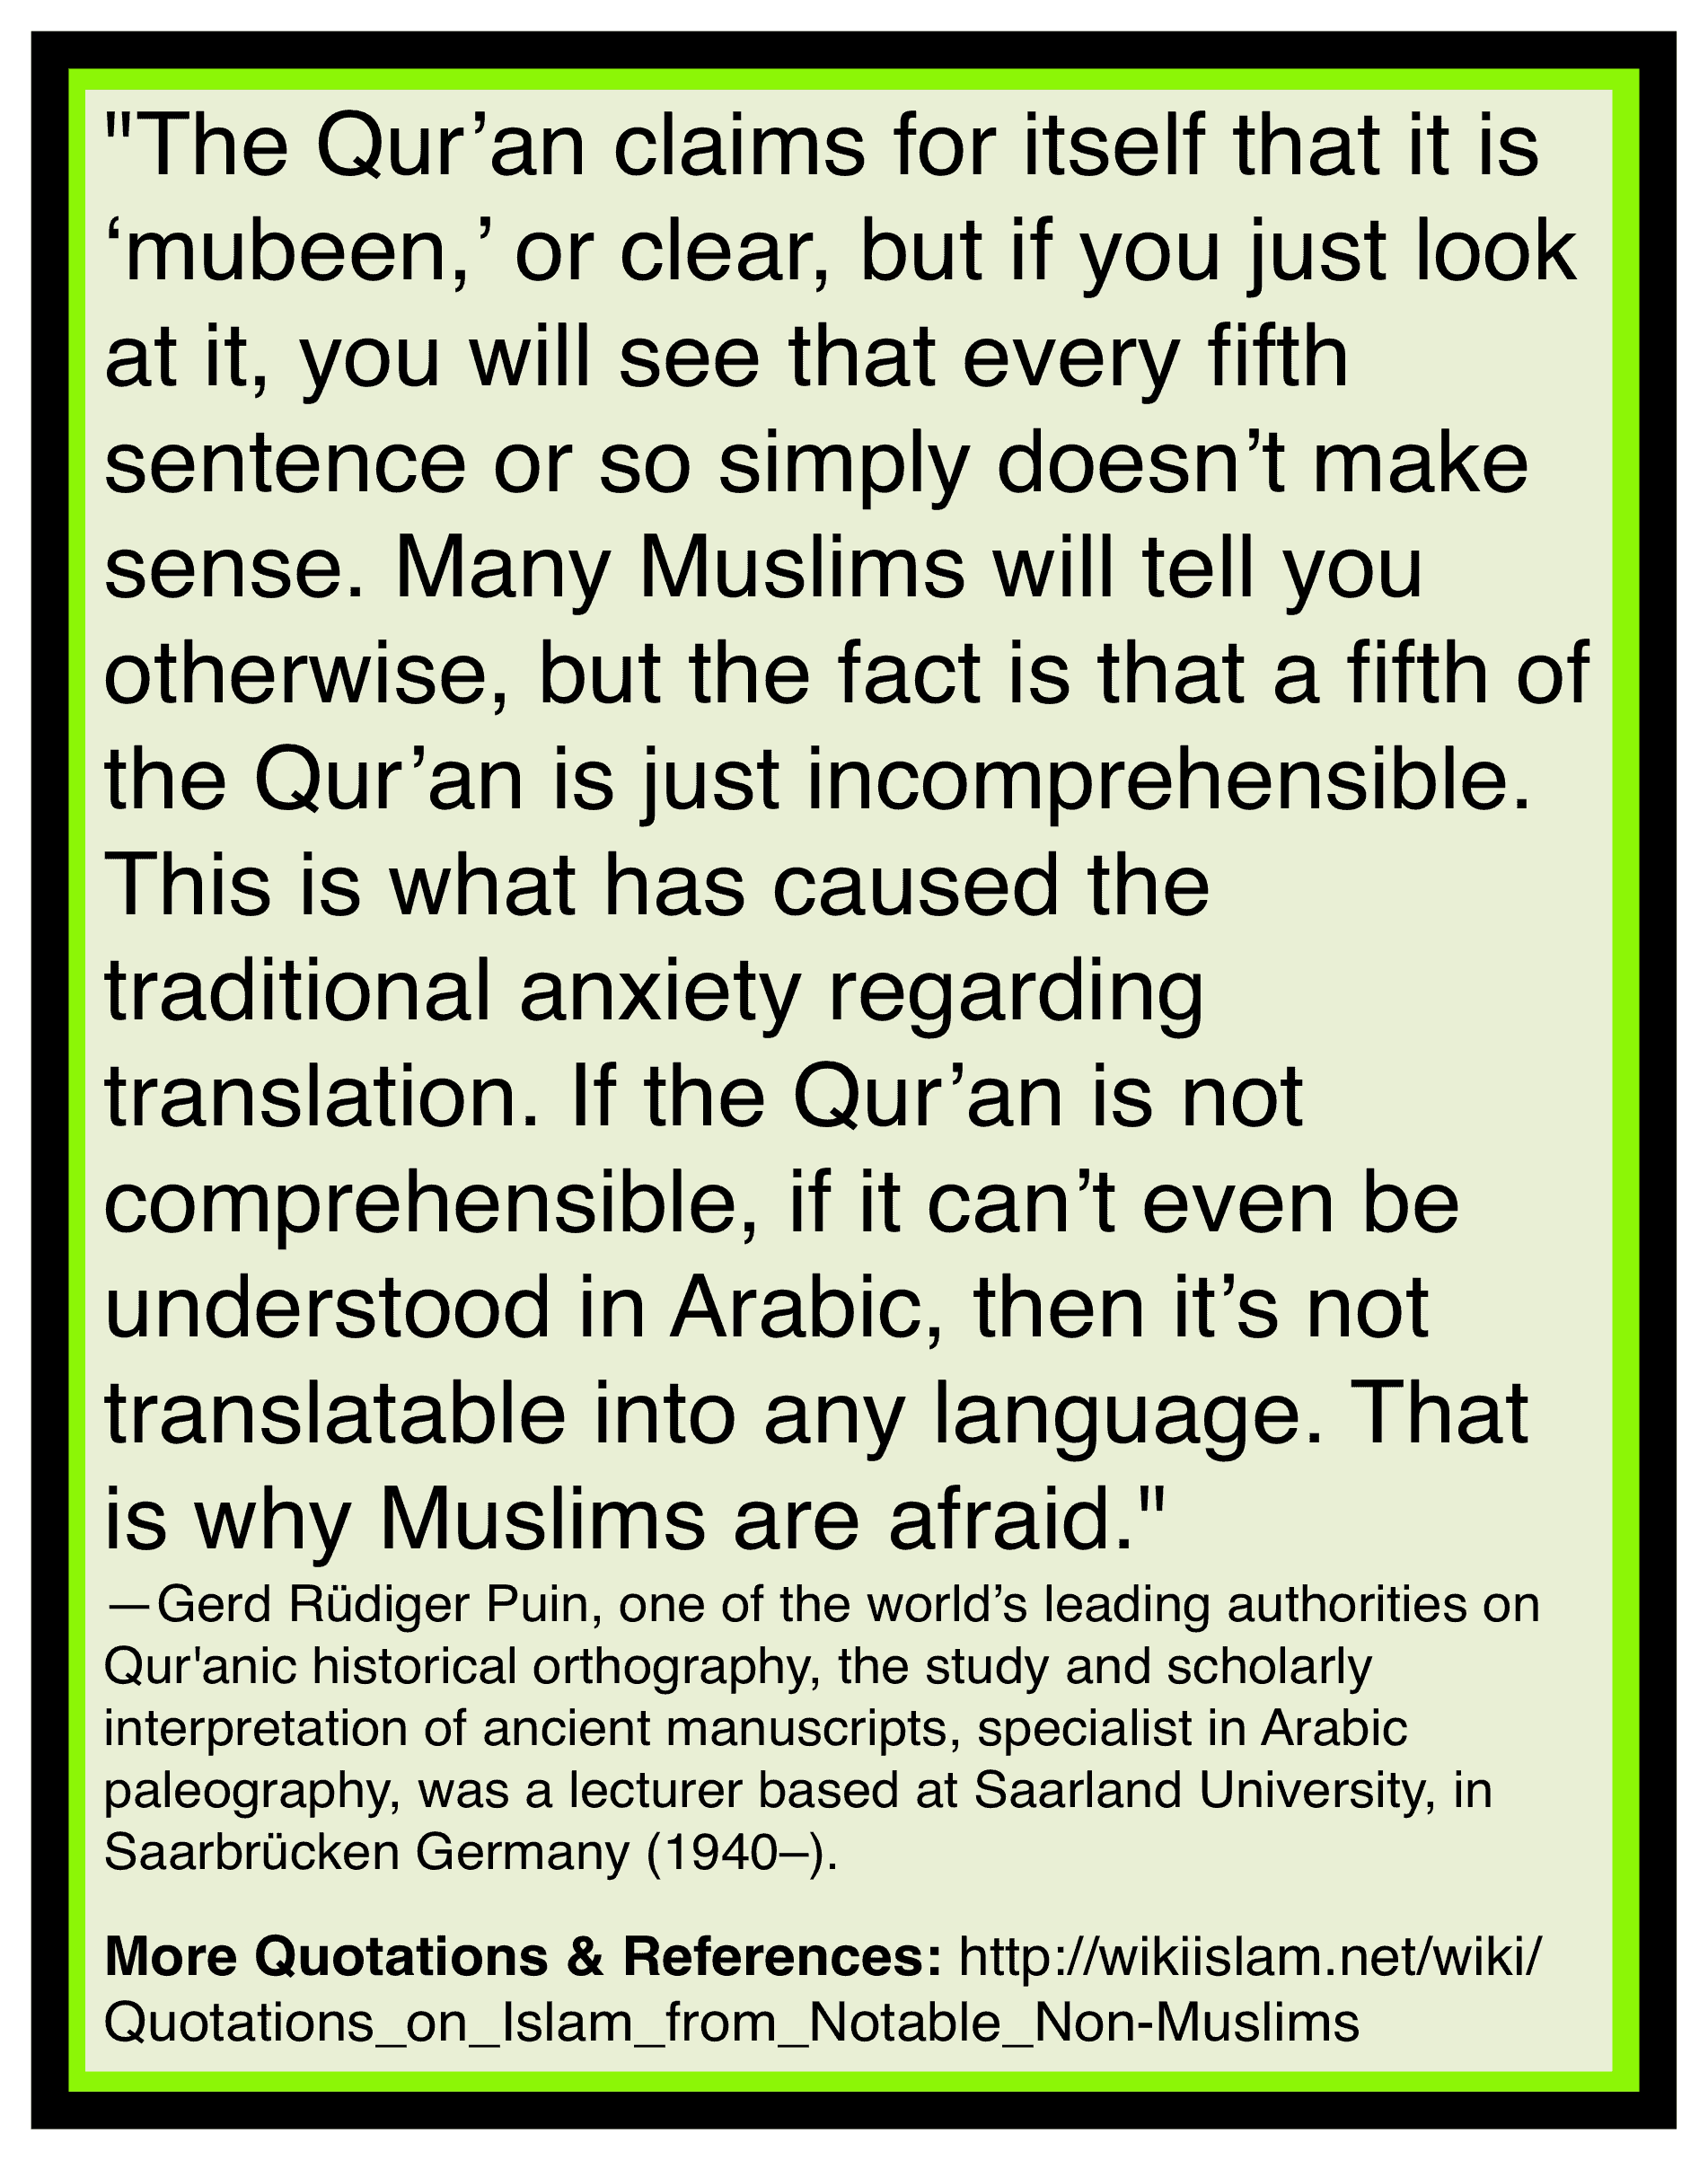 Quran is a mess and unclear